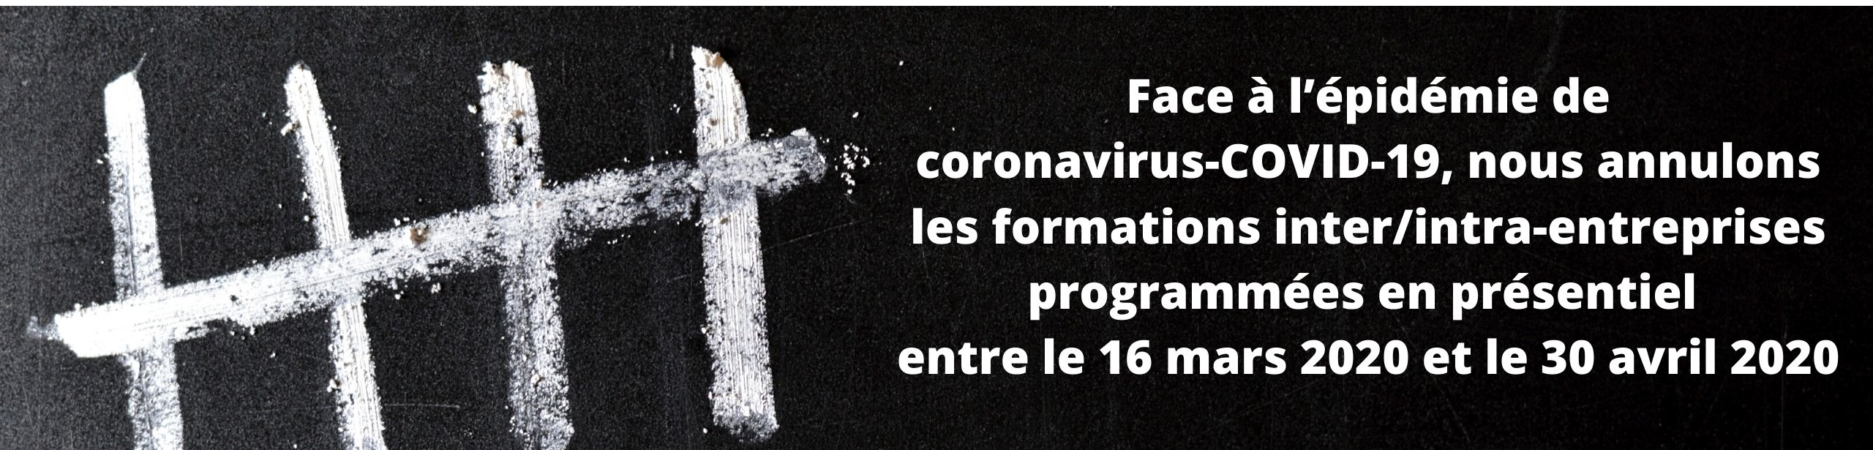 IFRB-COVID-Fermeture-Formation